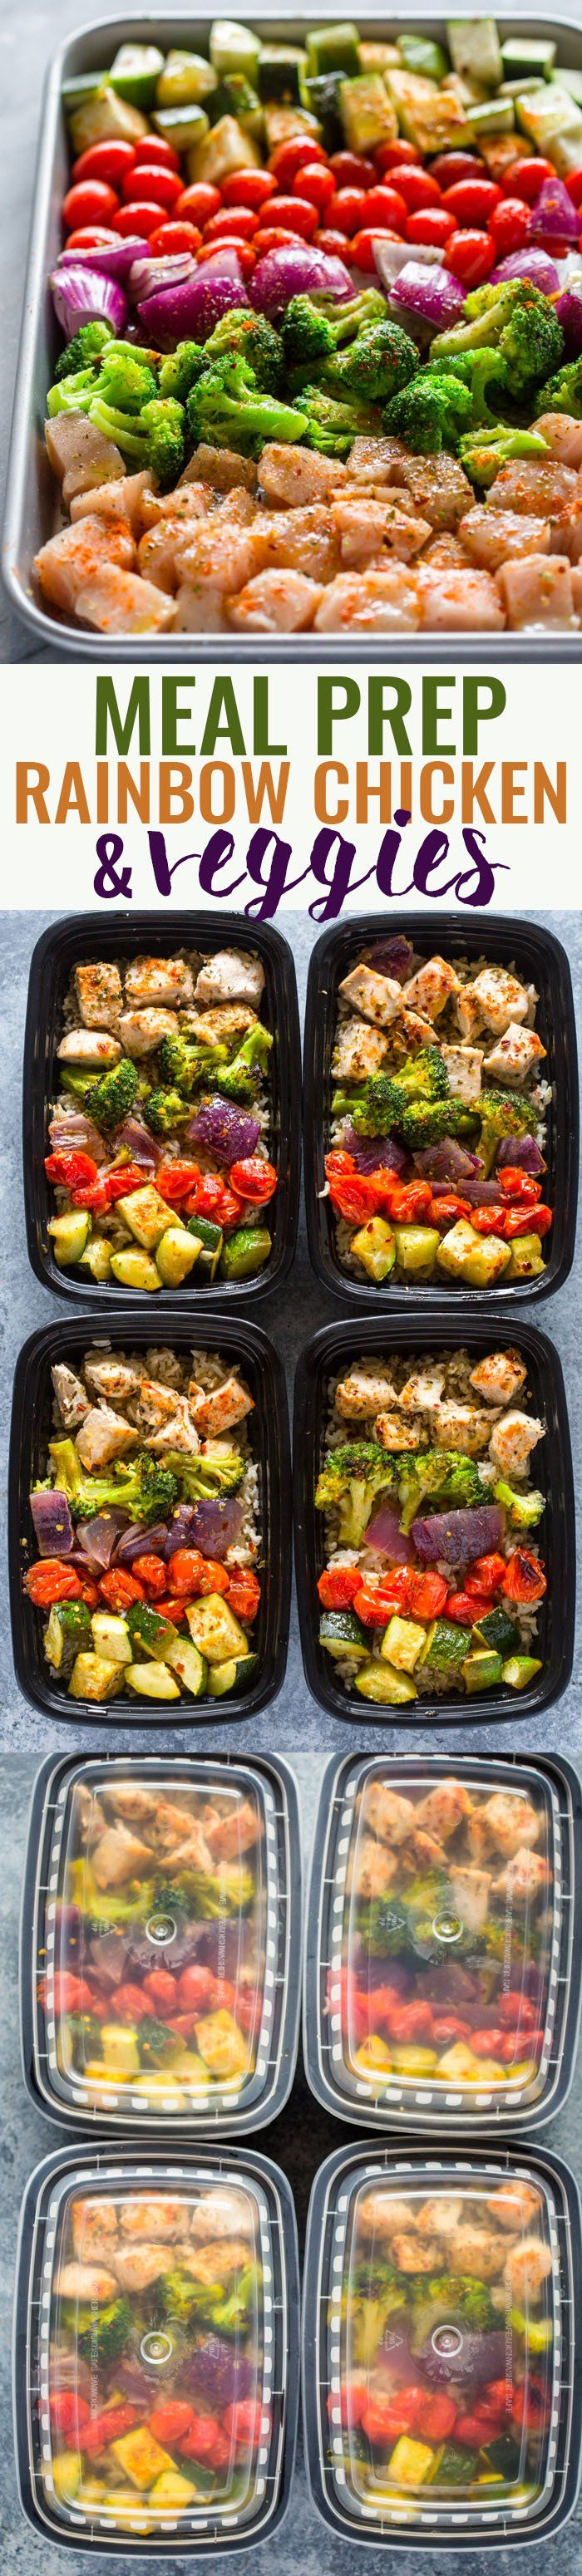 Meal Prep - Healthy Chicken and Veggies.